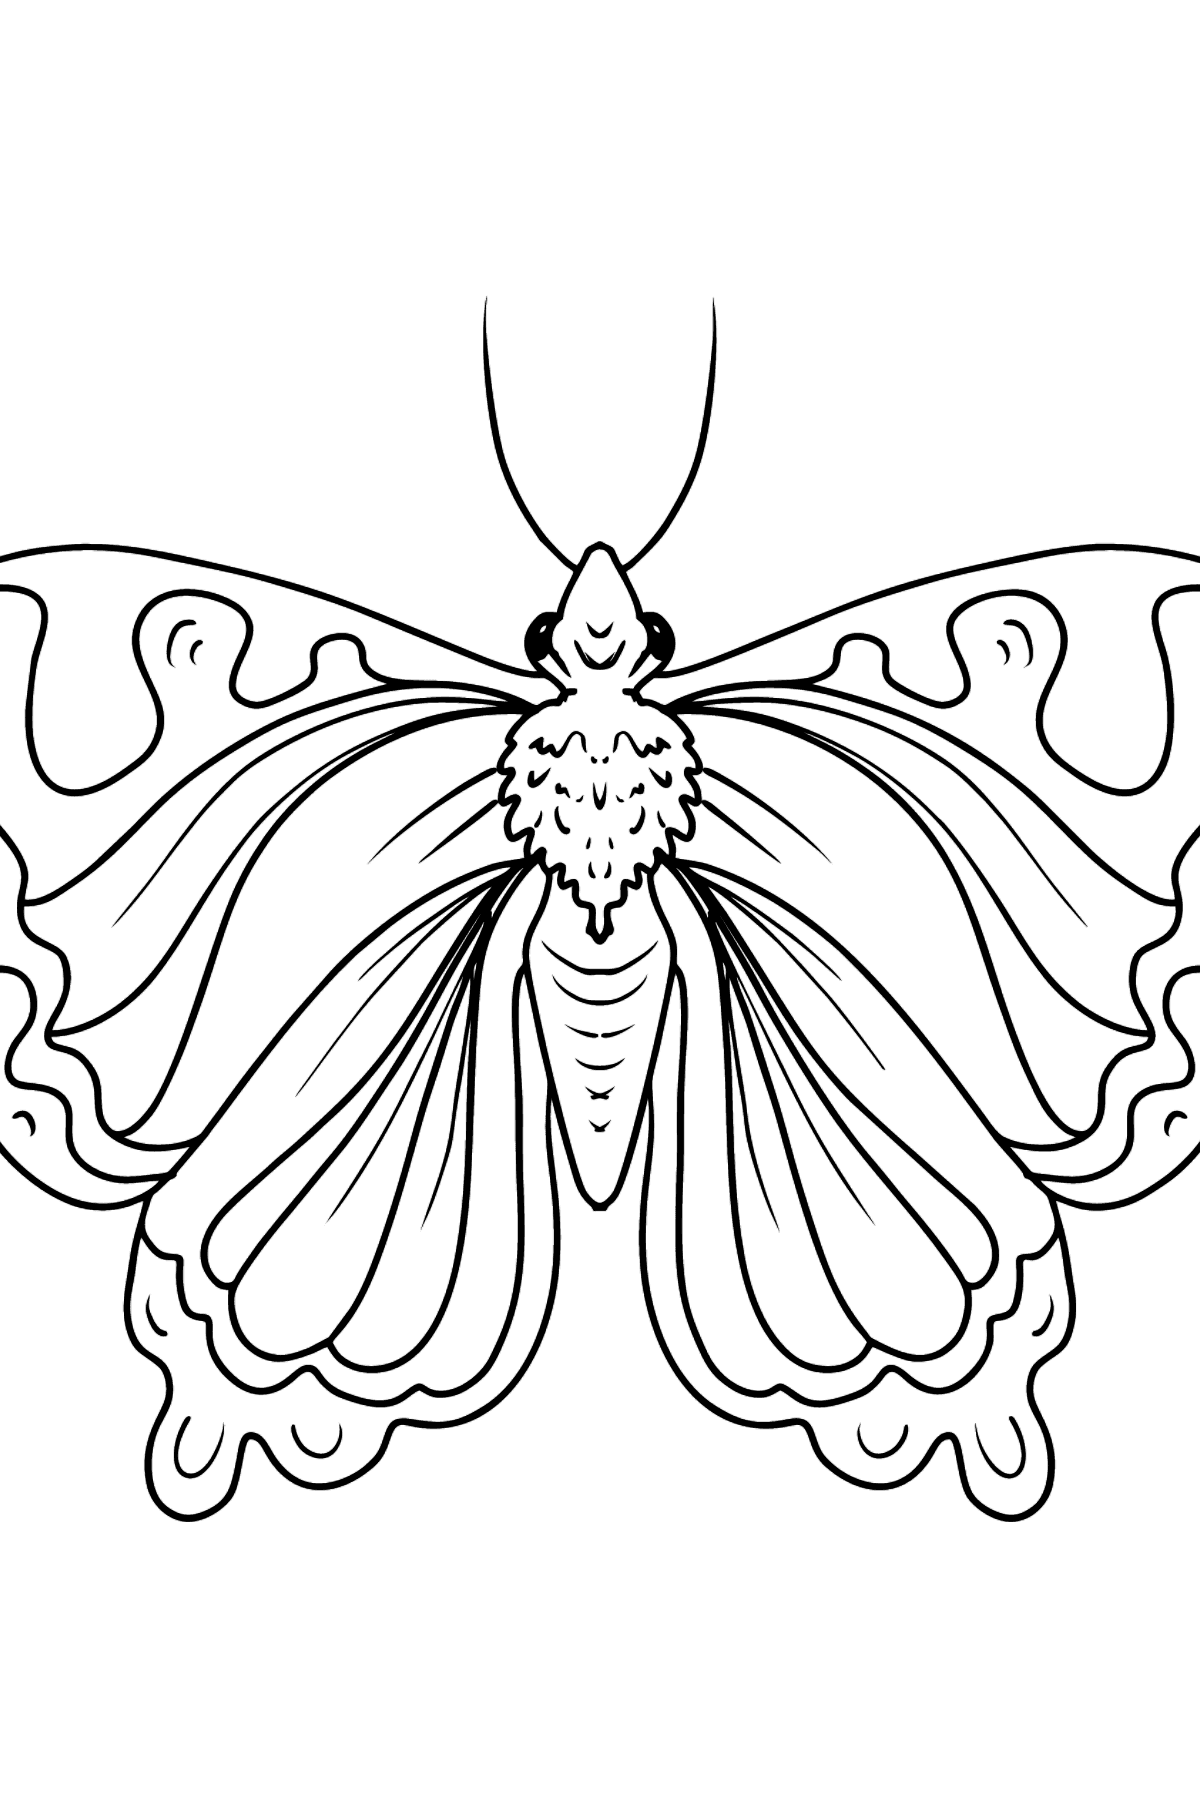 Cute Butterfly coloring page - Coloring Pages for Kids